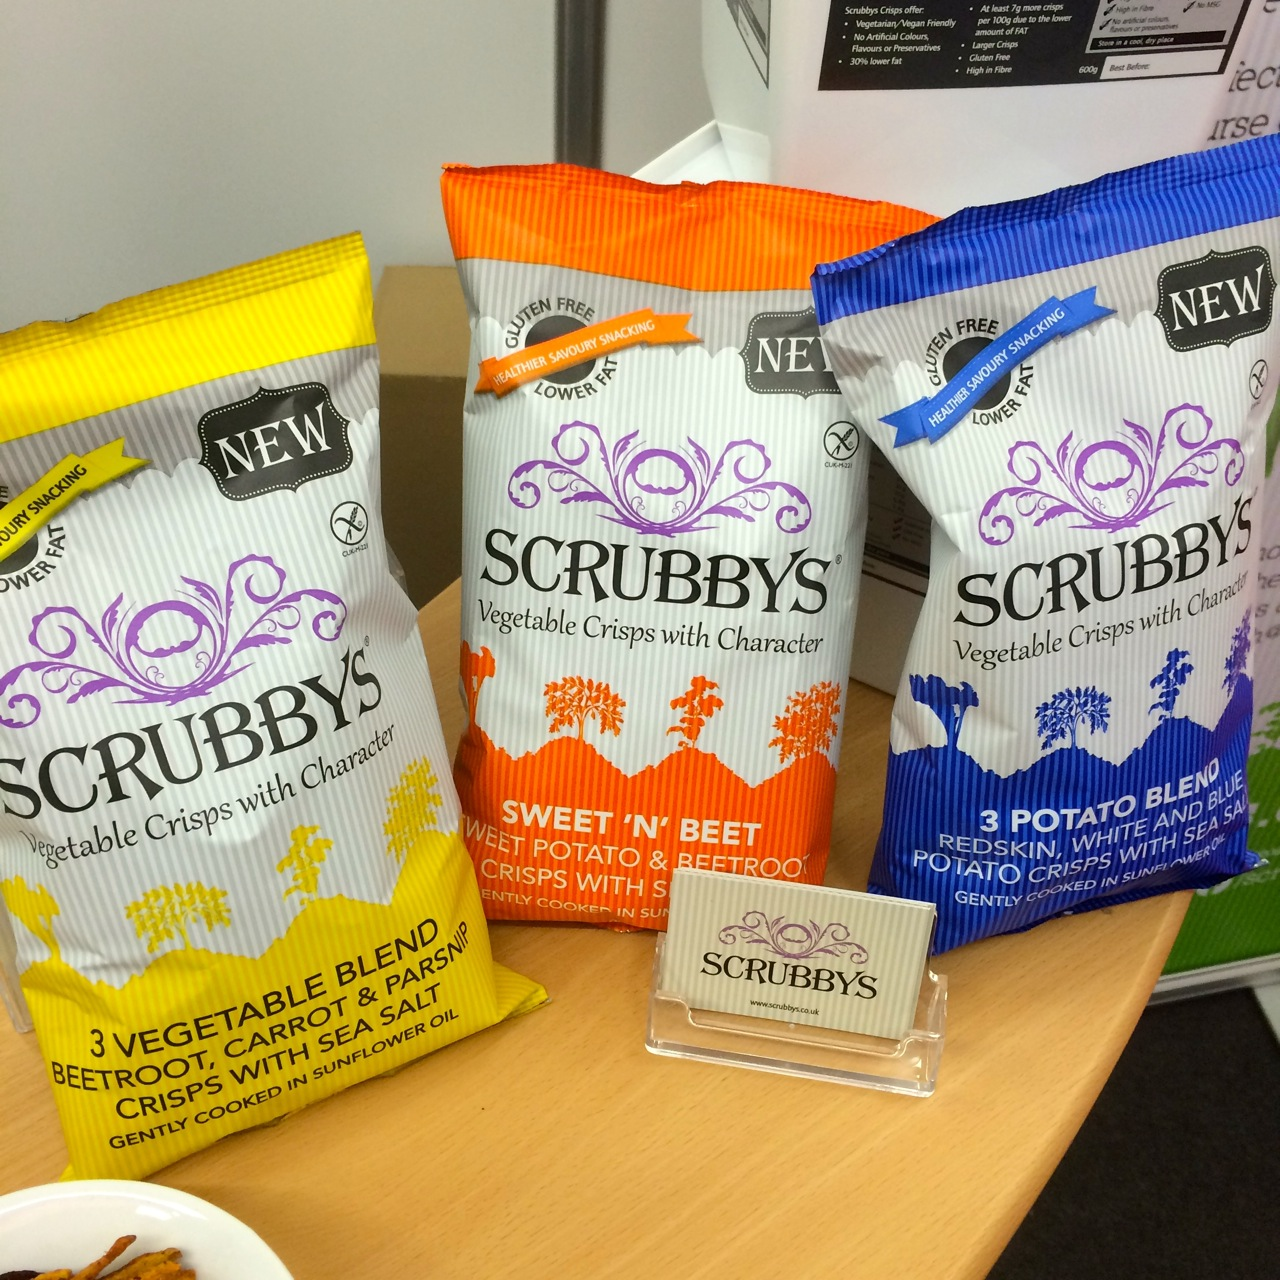 https://i1.wp.com/fatgayvegan.com/wp-content/uploads/2015/09/Scrubbys-crisps.jpg?fit=1280%2C1280